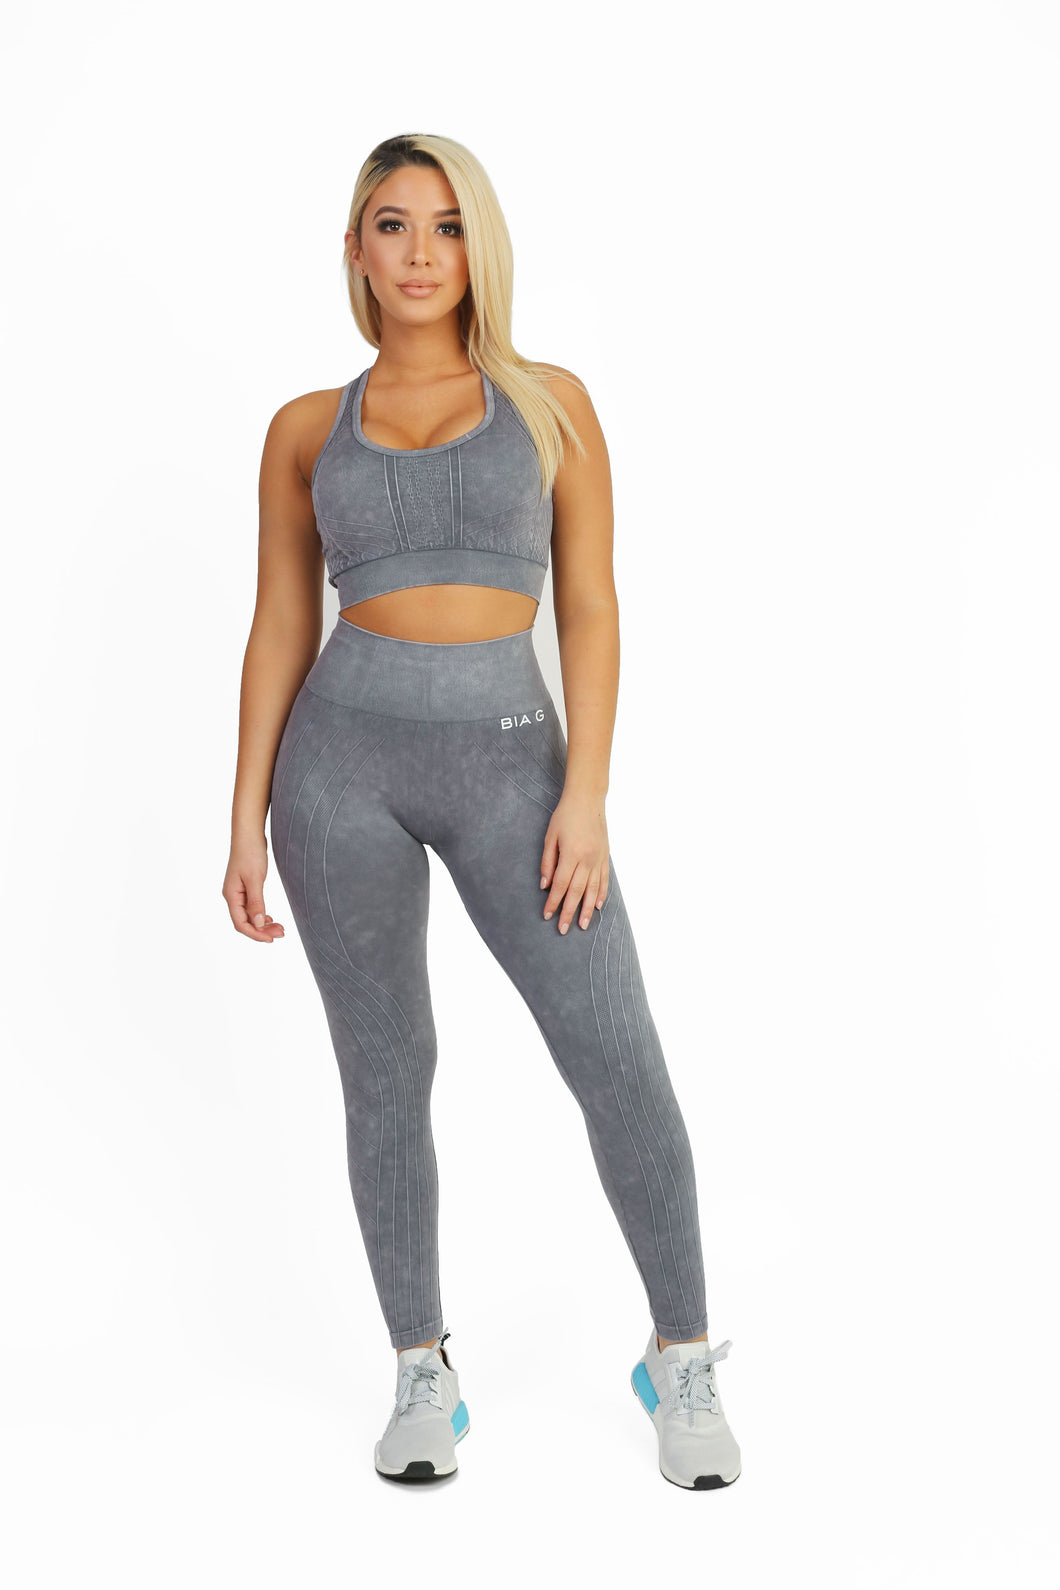 Stretch Pewter Leggings